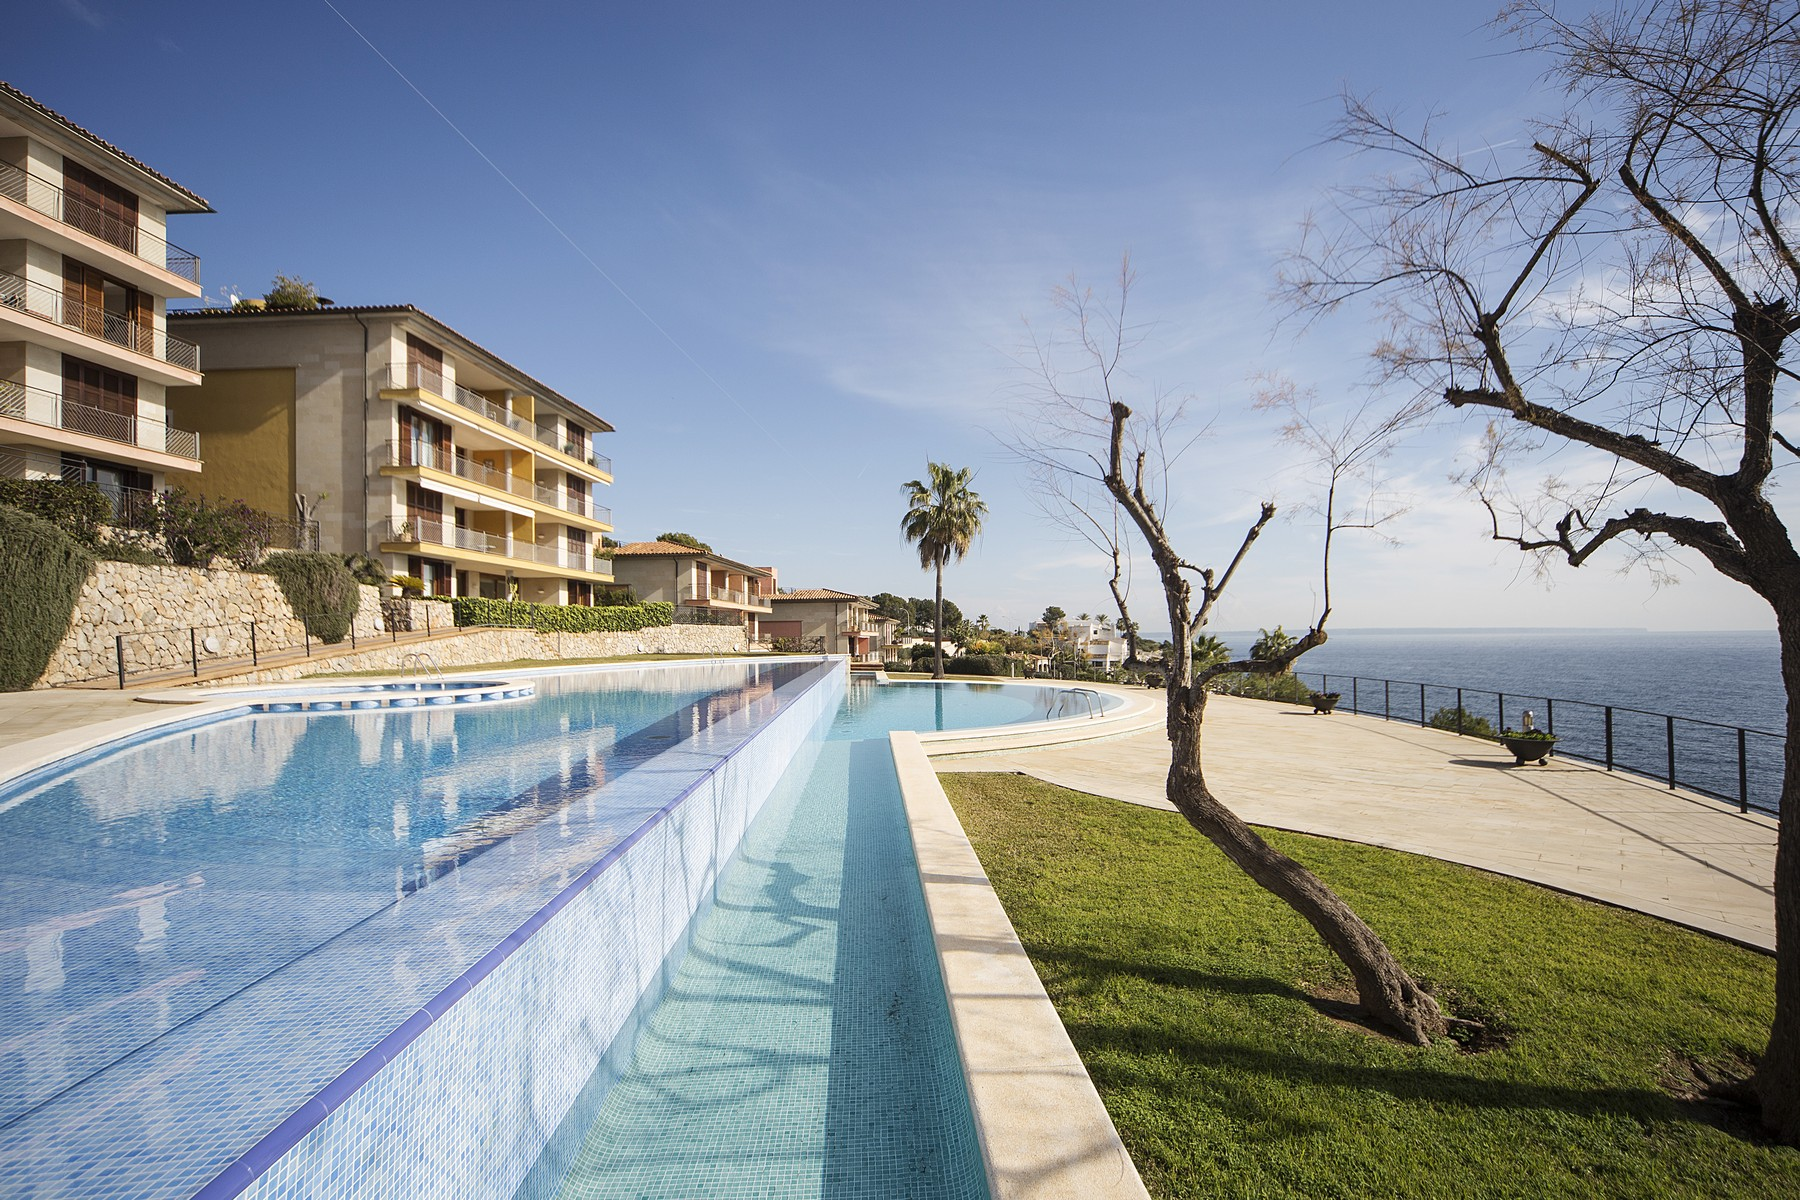 公寓 為 出售 在 Apartment with sea access in Sol de Mallorca Sol De Mallorca, 馬婁卡, 07181 西班牙